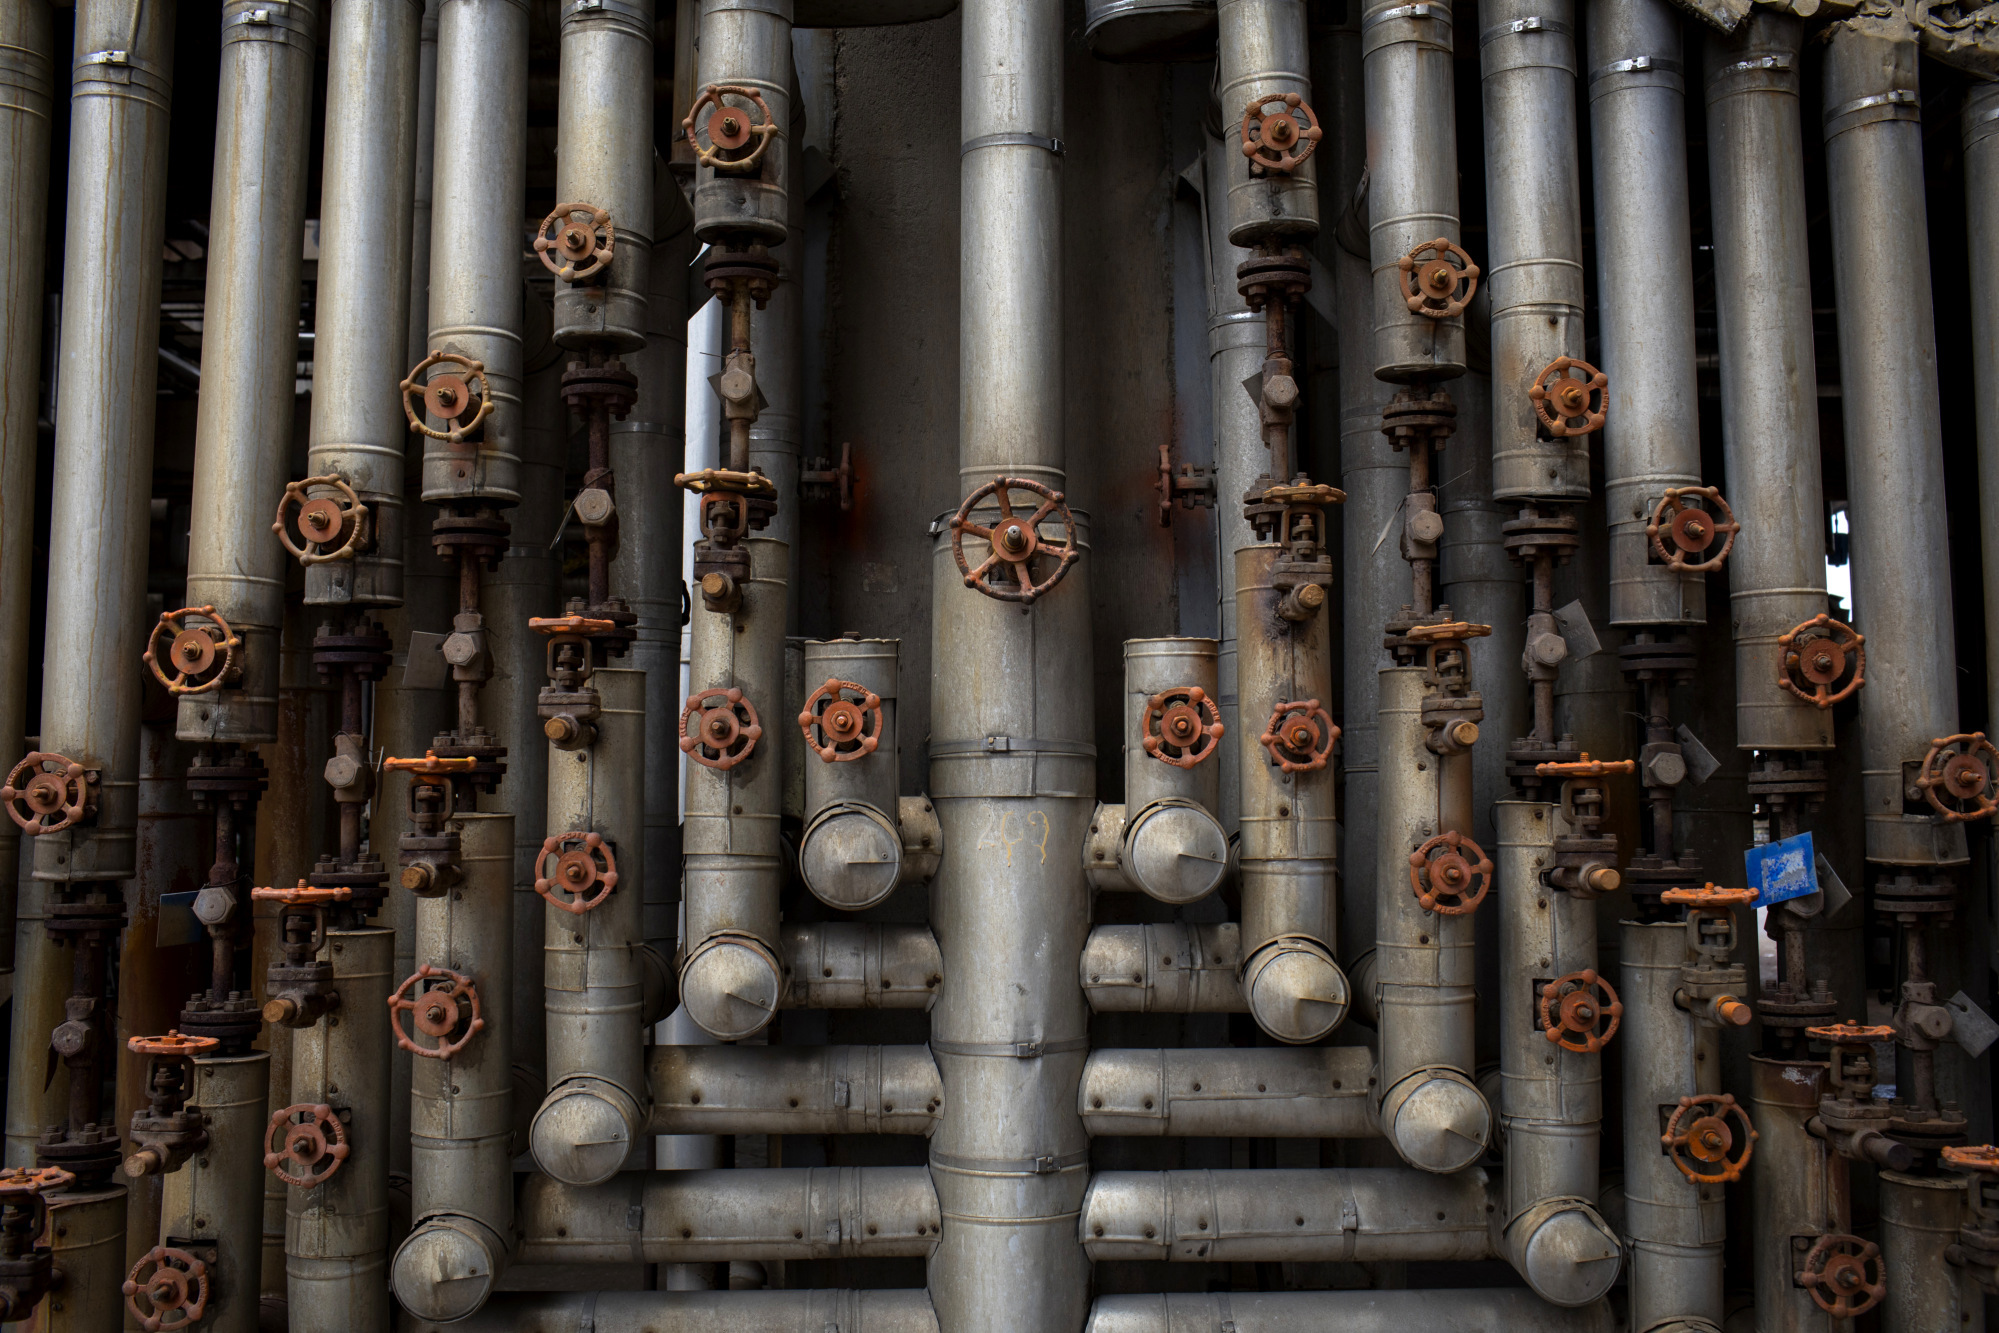 Pipes stand at a cracking plant for the Ecopetrol SA refinery in Barrancabermeja, Santander, Colombia, on Friday, April 20, 2018. Colombia's state-run oil company contained a spill in late March after more than 20 days and approximately 550 barrels of crude oil flowed into water sources in the Santander province. Photographer: Nicolo Filippo Rosso/Bloomberg